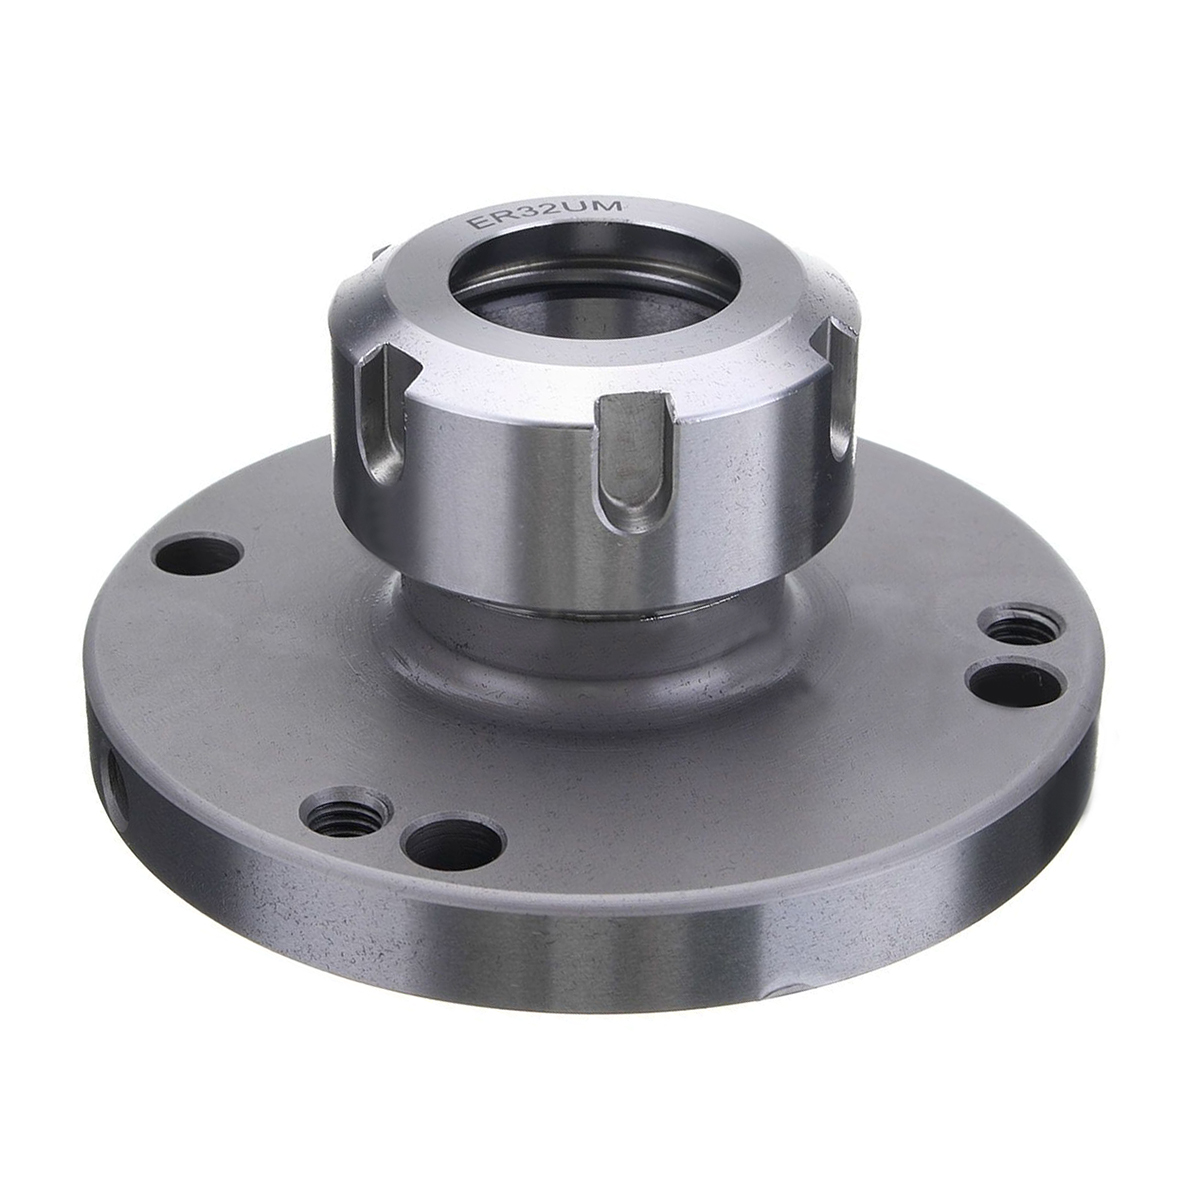 1pc 45 50HRc ER 32 Collect Chuck High Speed Steel 41Cr4 100mm Diameter For CNC Lathe